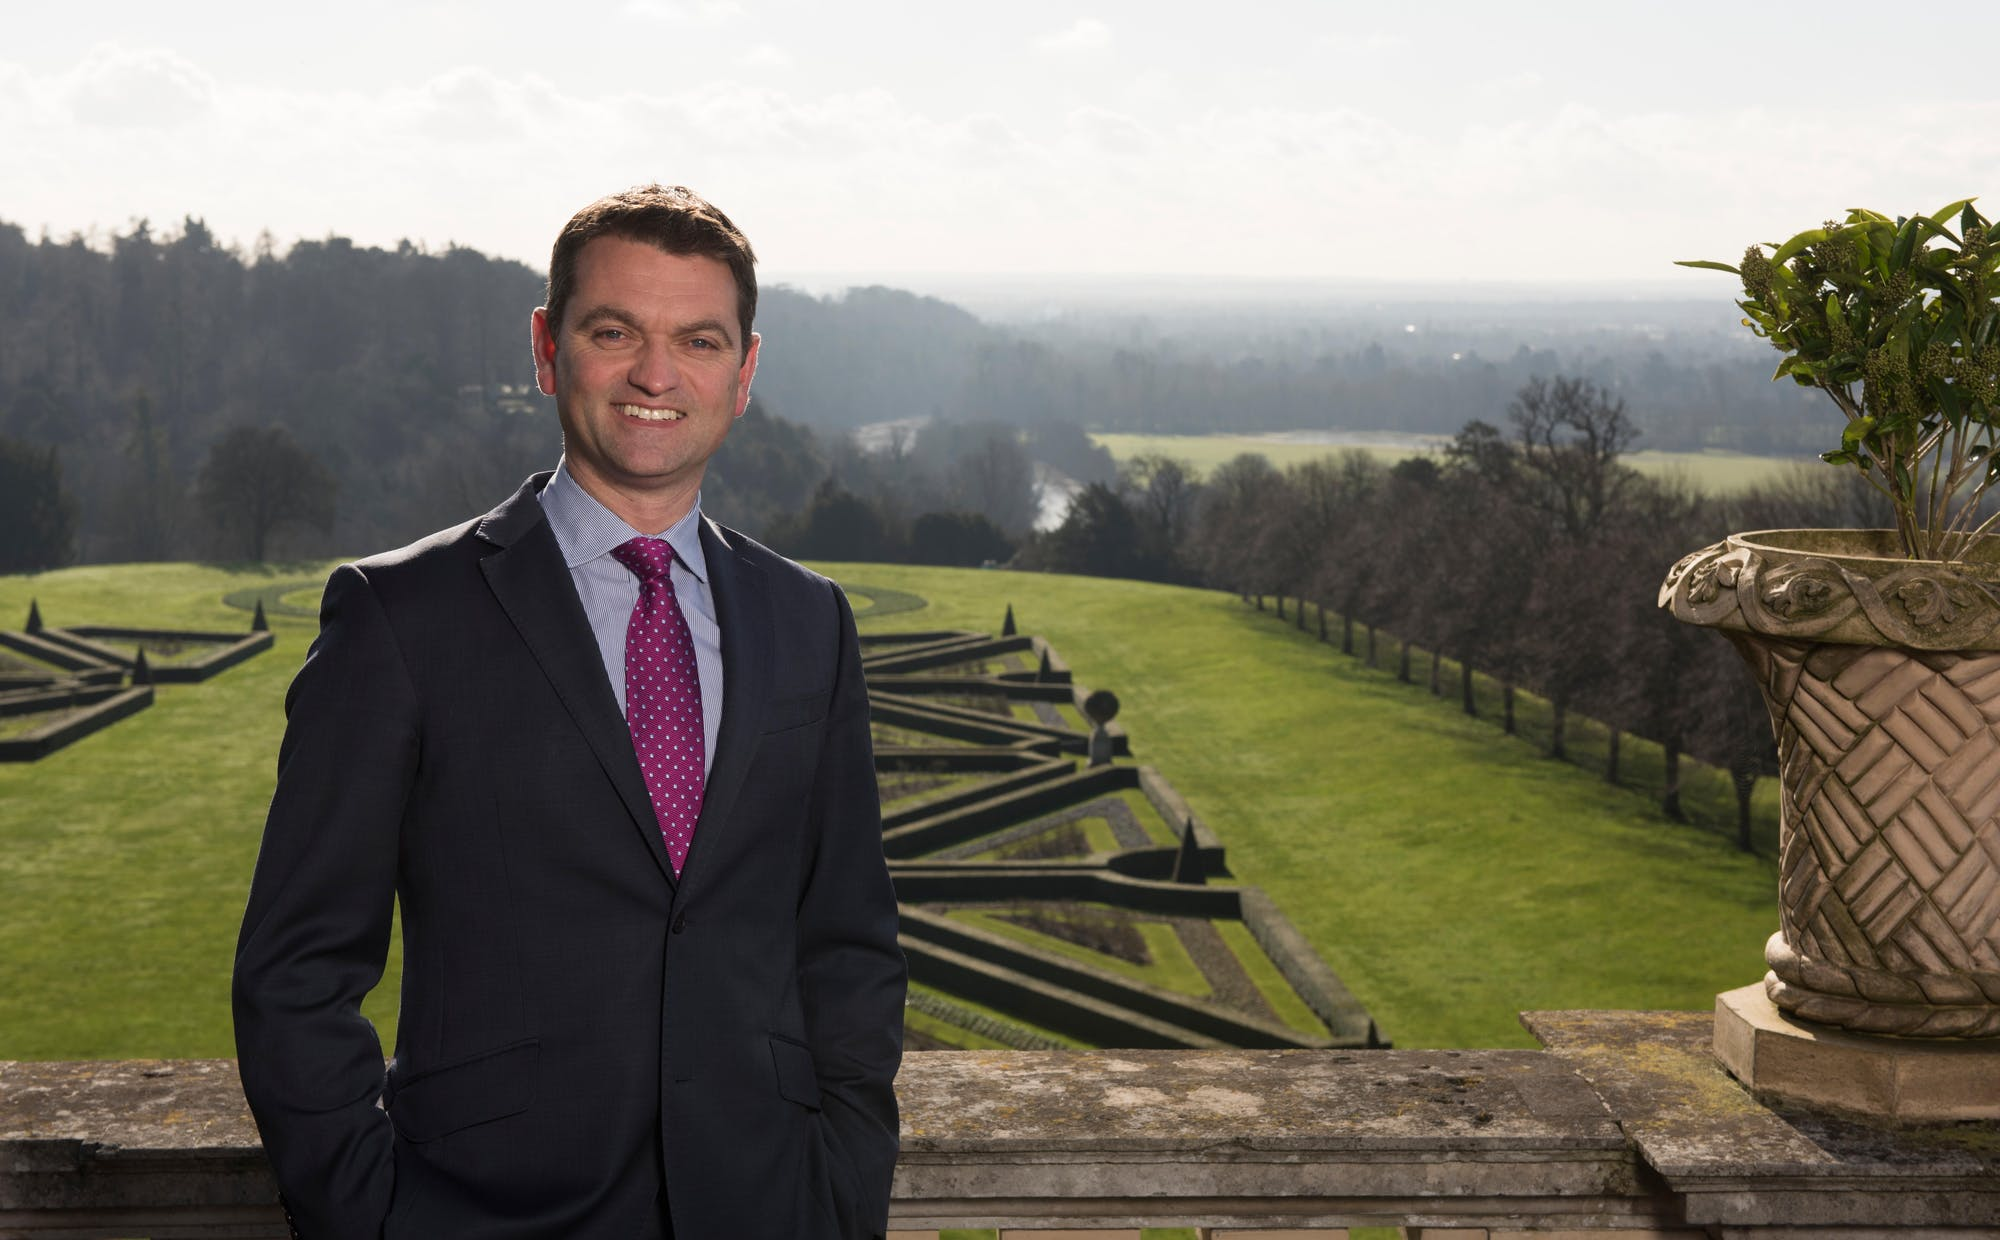 Navigating the Crisis  Andrew Stembridgeon leading Iconic Luxury Hotels through Covid-19